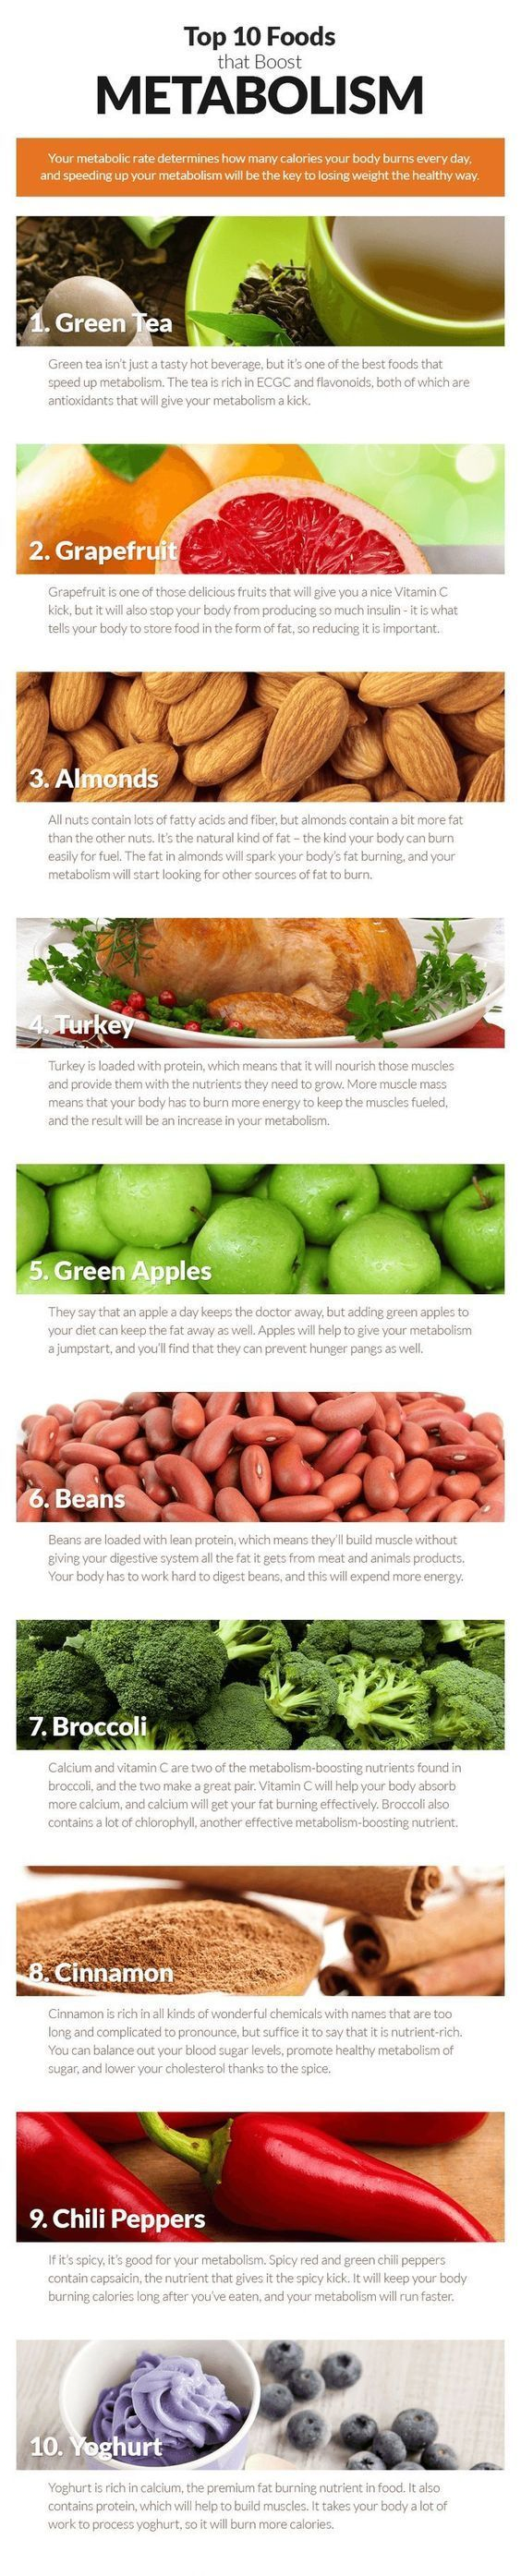 Top 10 foods that boost metabolism #foodfacts http://ncnskincare.com